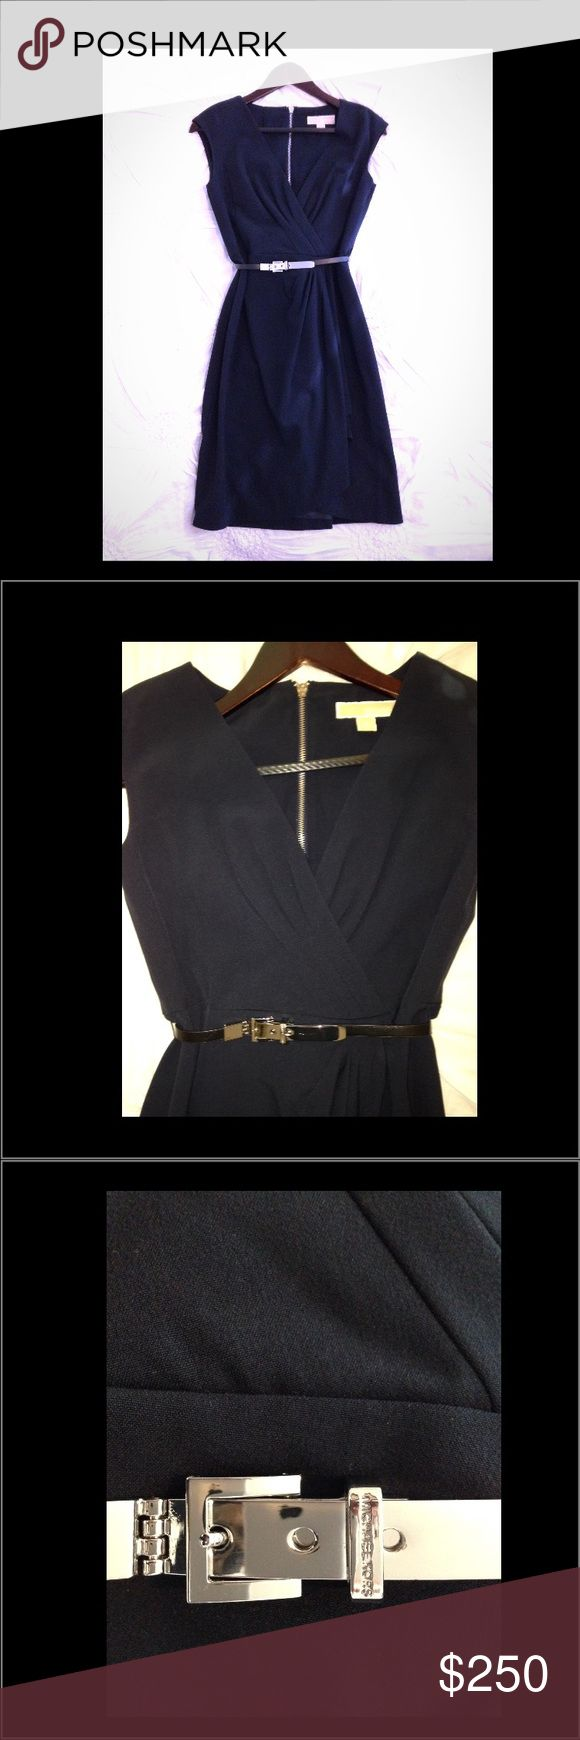 """MICHAEL Kors Navy Mock-Wrap Dress w/Black MK Belt MICHAEL Kors dark Navy Blue mock-wrap Dress, only worn once then organically dry cleaned. In mint condition. Size 2, length hits right at knee on 5'1"""" tall person. Fully lined, zips at back with silver MK detail hardware, black faux leather belt with silver MK detail hardware included. Kept in garment bag since purchased at MK Store located in Beverly Center, Los Angels. Additional photos and details available upon request.  Thank You Michael…"""